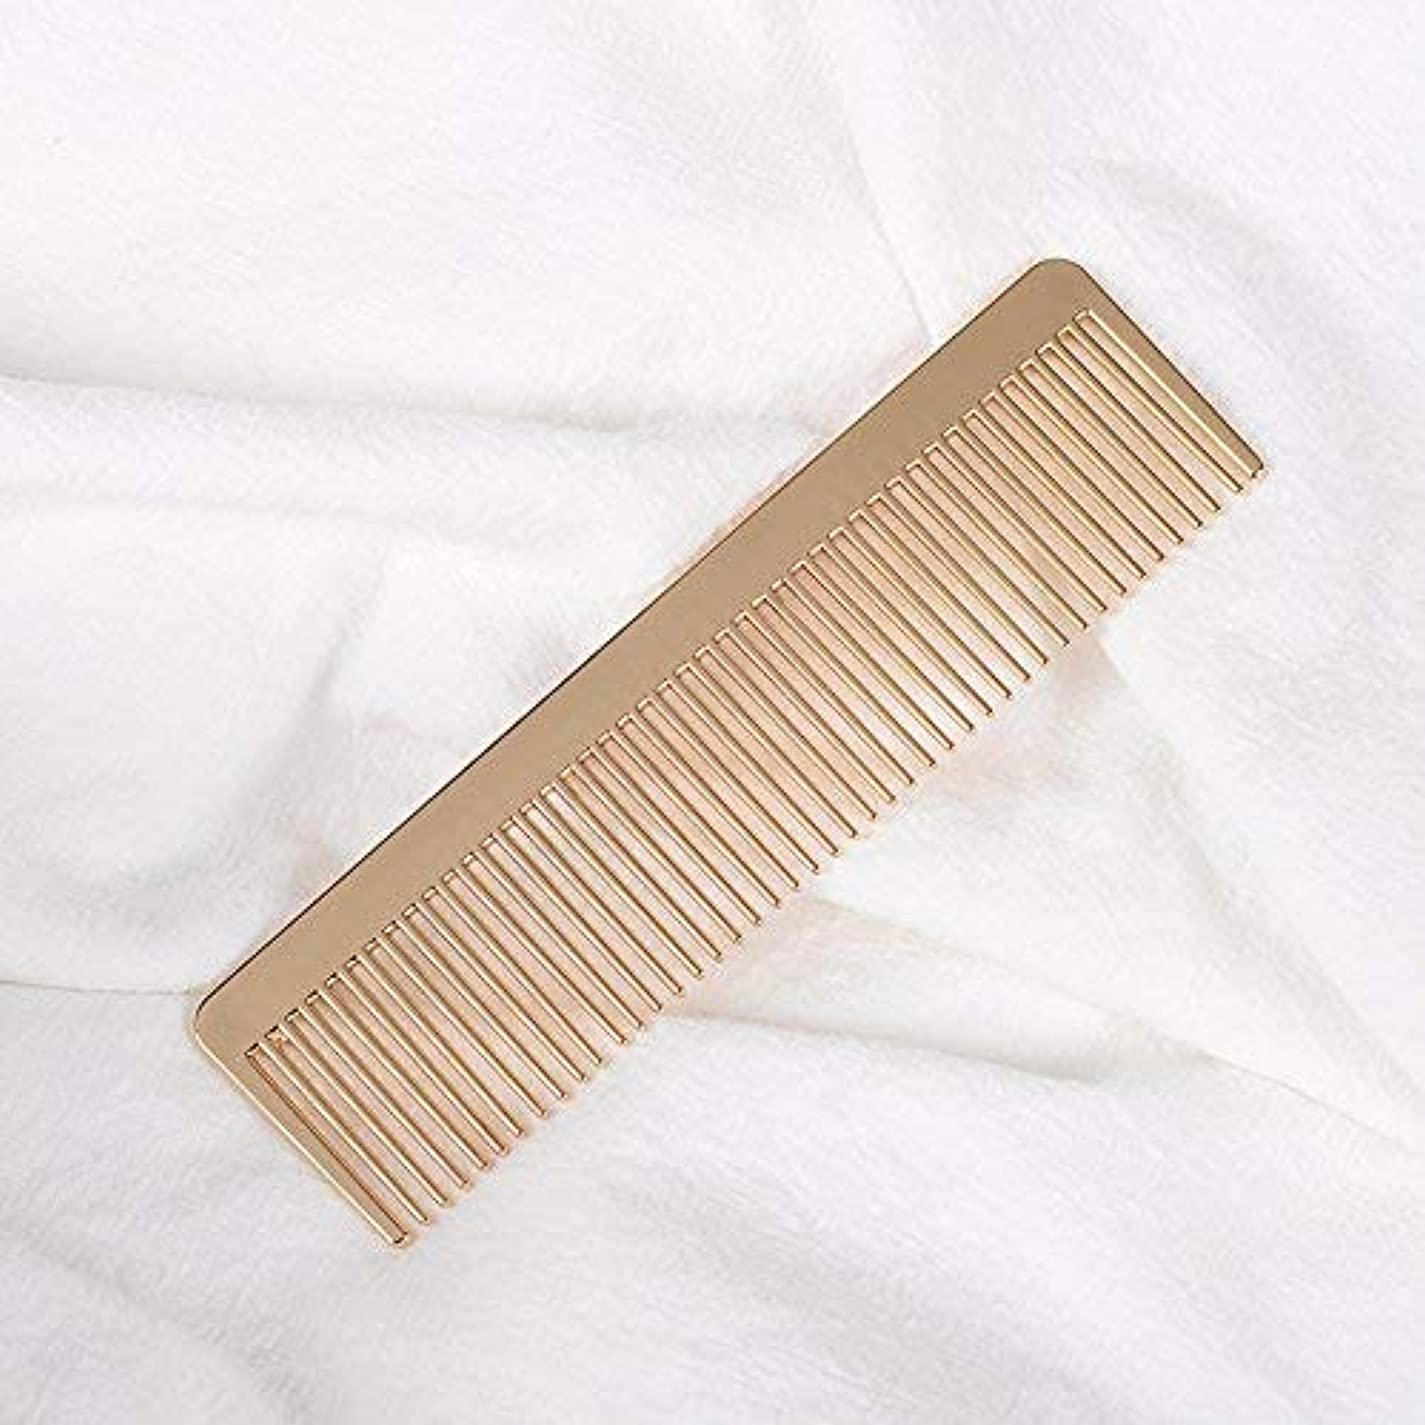 続ける安全性動的Grtdrm Portable Metal Comb, Minimalist Pocket Golden Hair Comb for Women Men Unisex [並行輸入品]